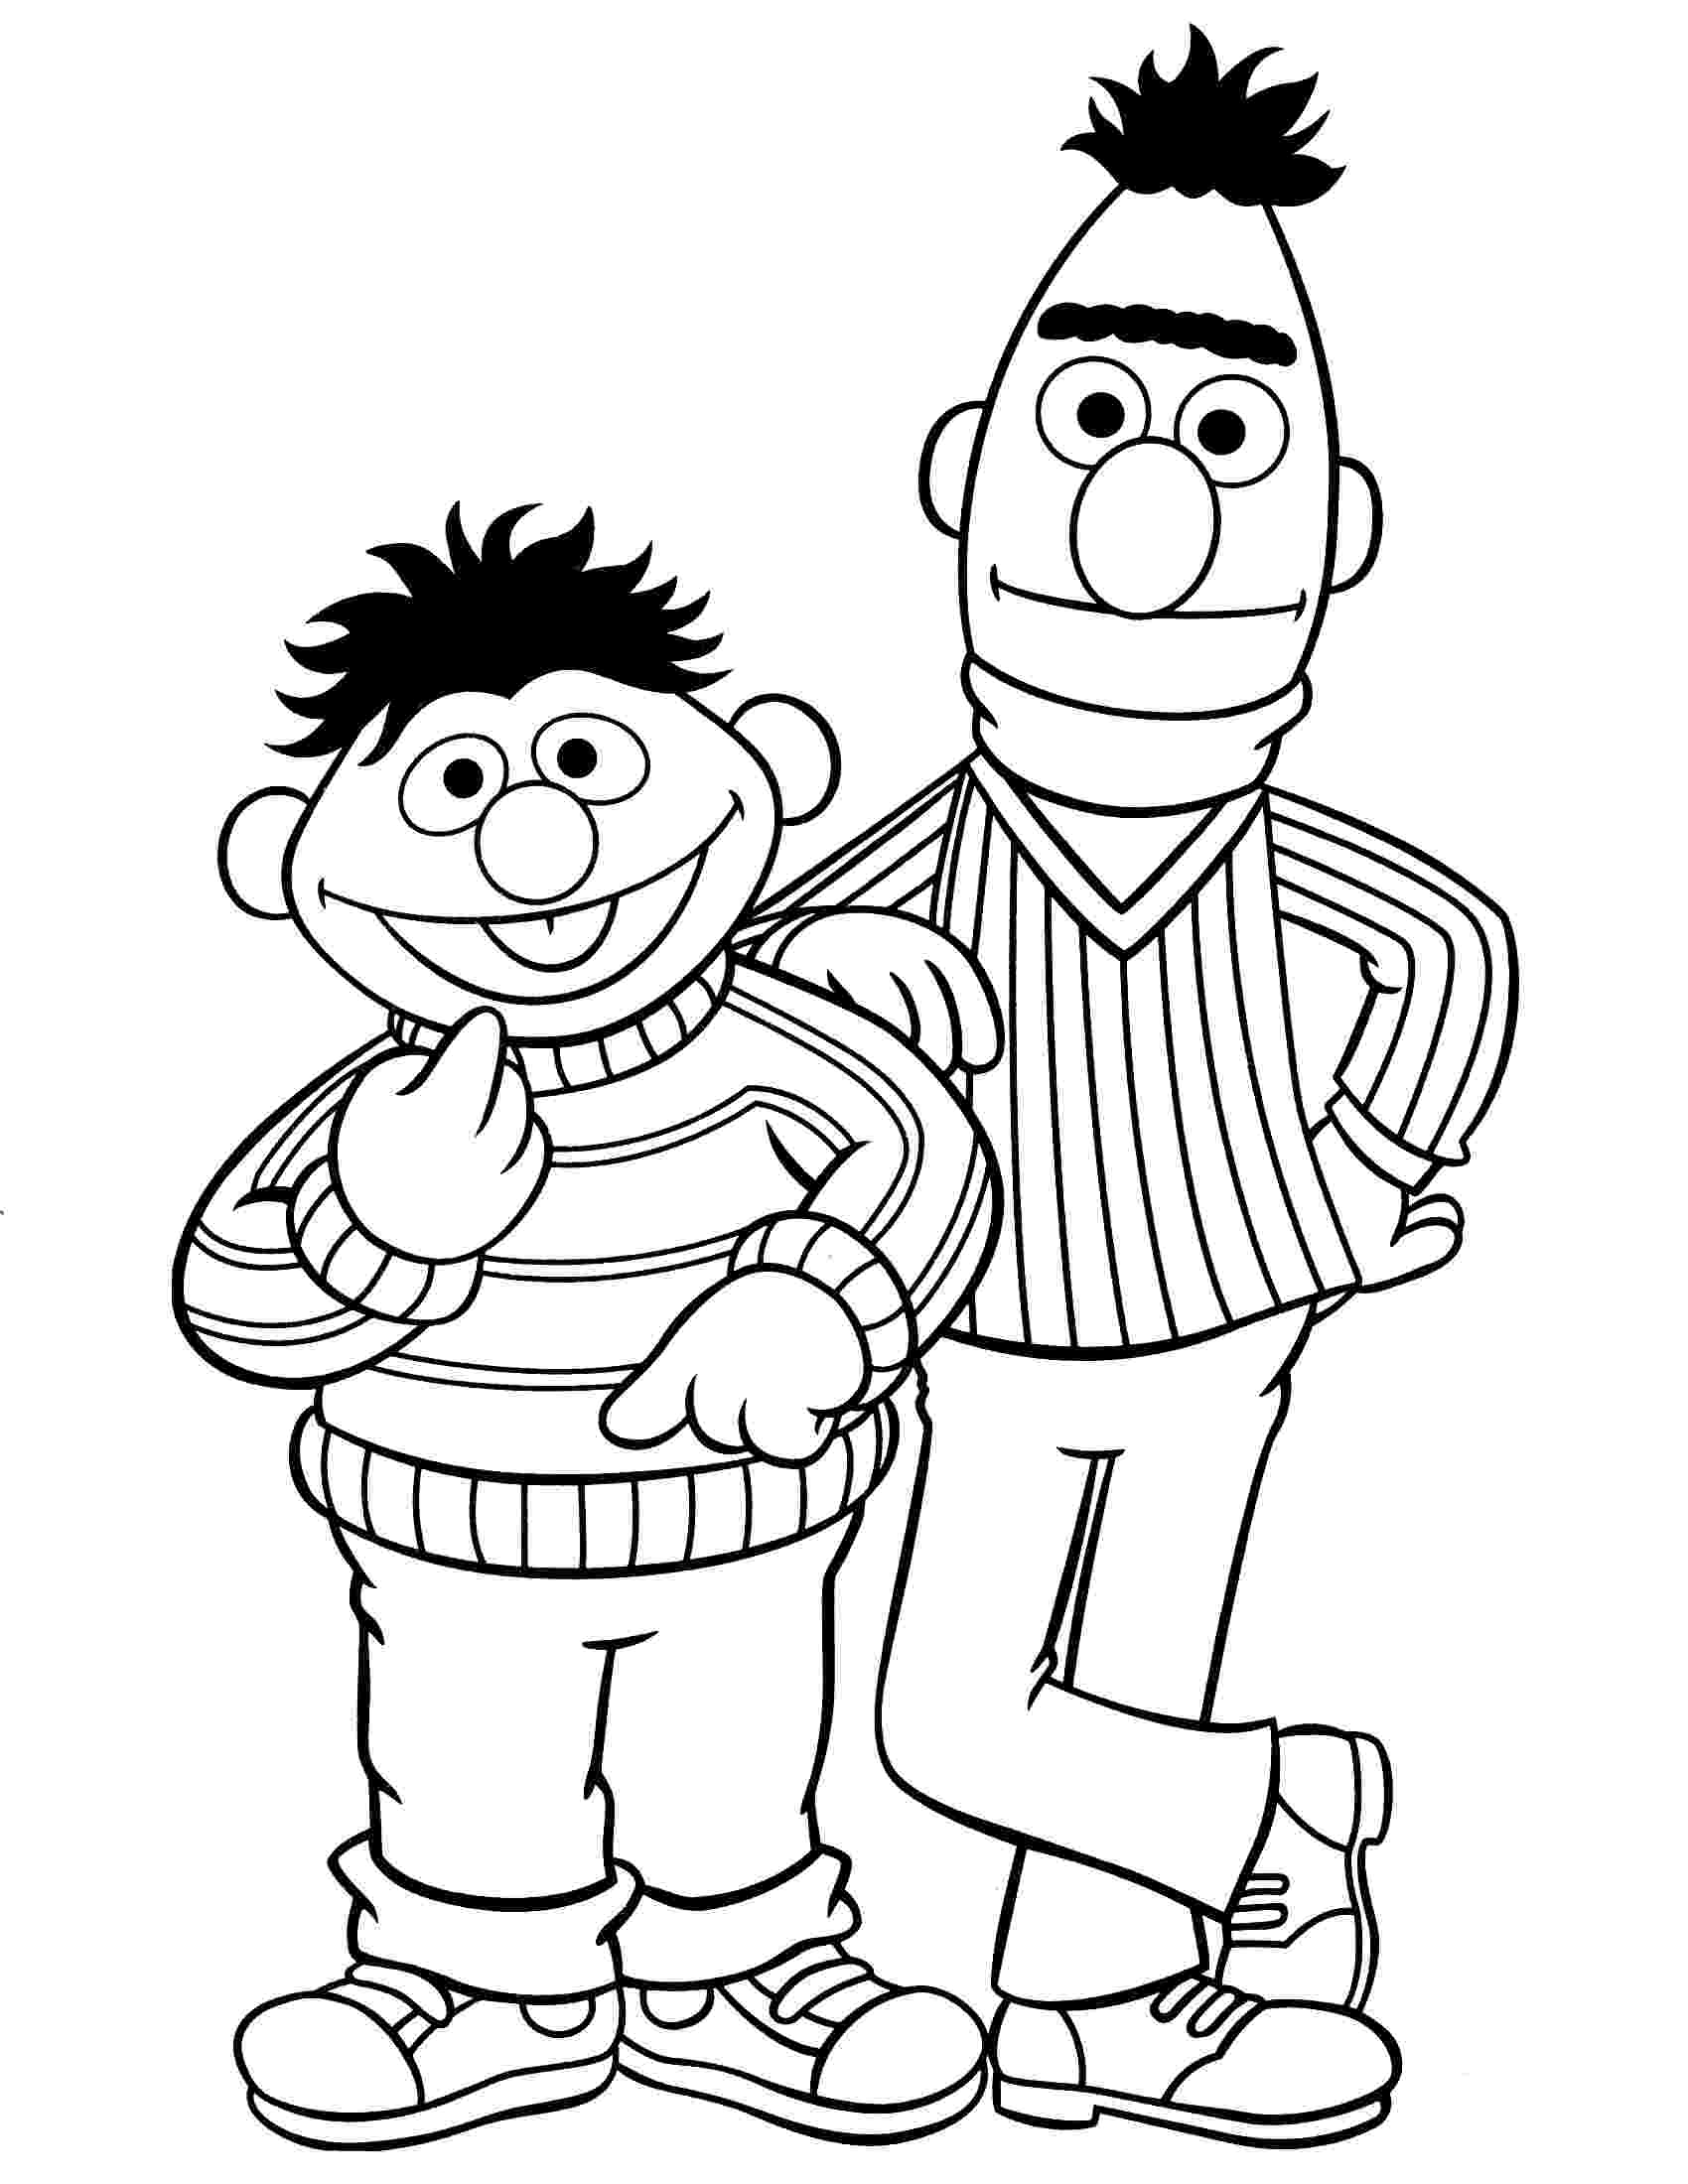 sesame street coloring pages sesame street coloring pages getcoloringpagescom coloring street sesame pages